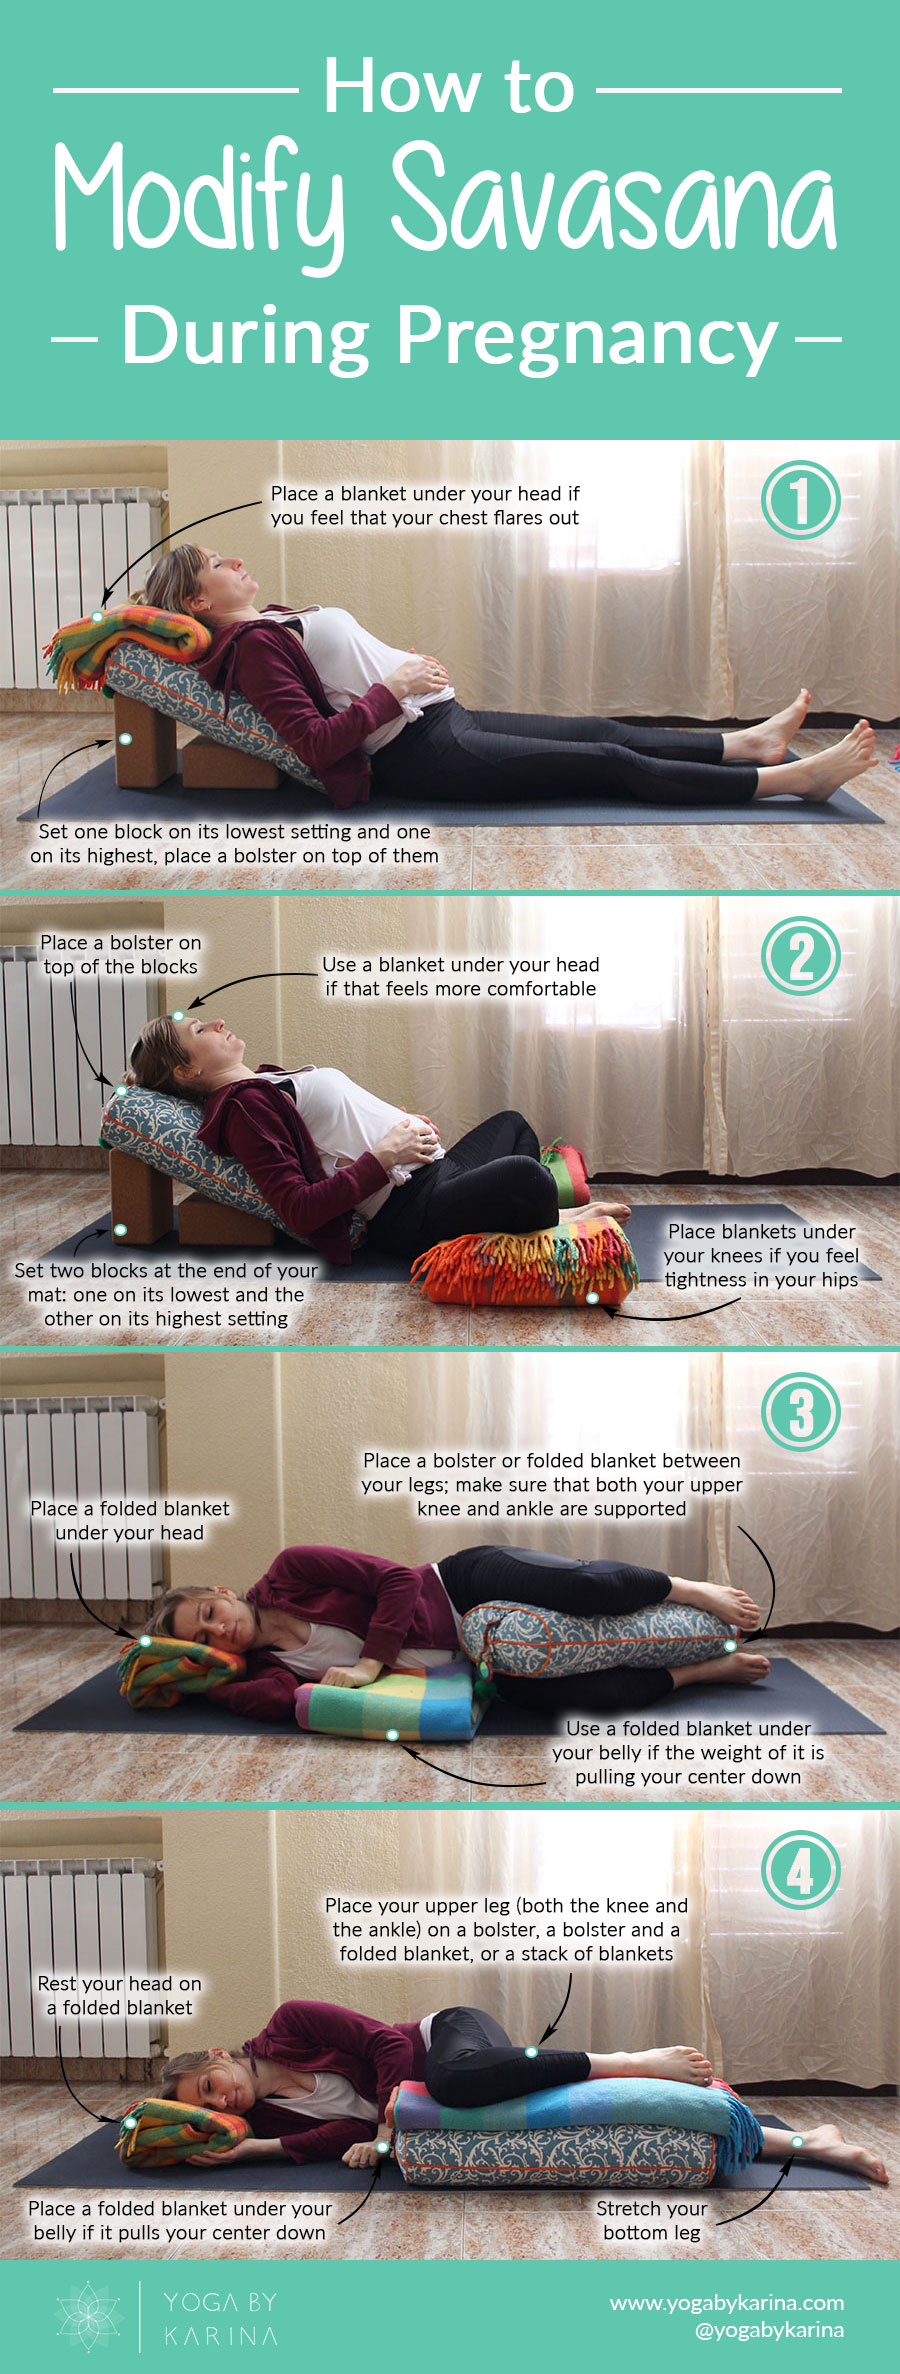 savasana during pregnancy